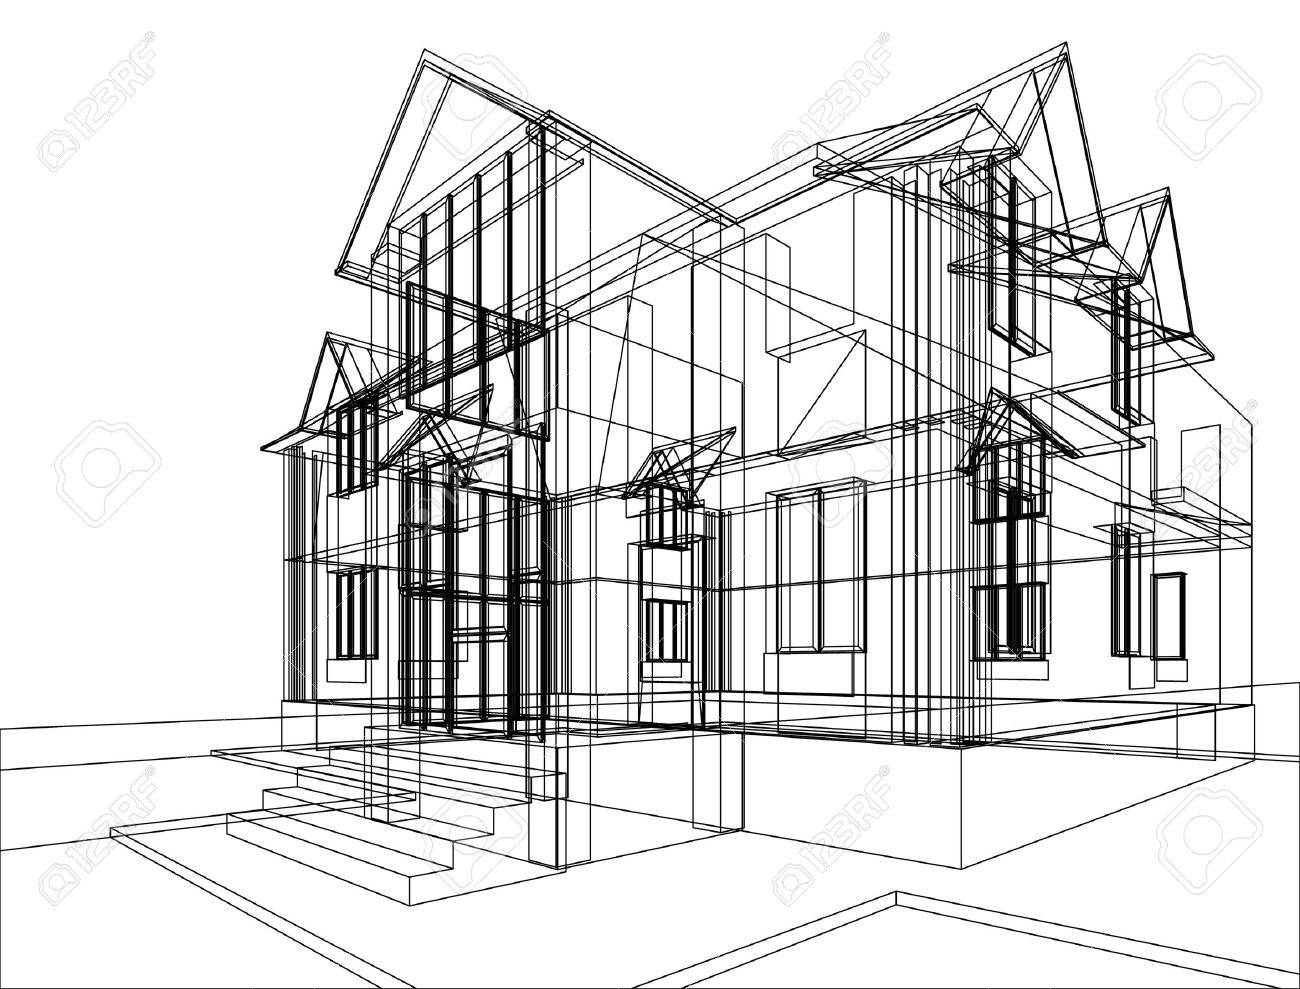 abstract sketch of house illustration of 3d construction stock illustration 9546116 - 3d Drawing Of House